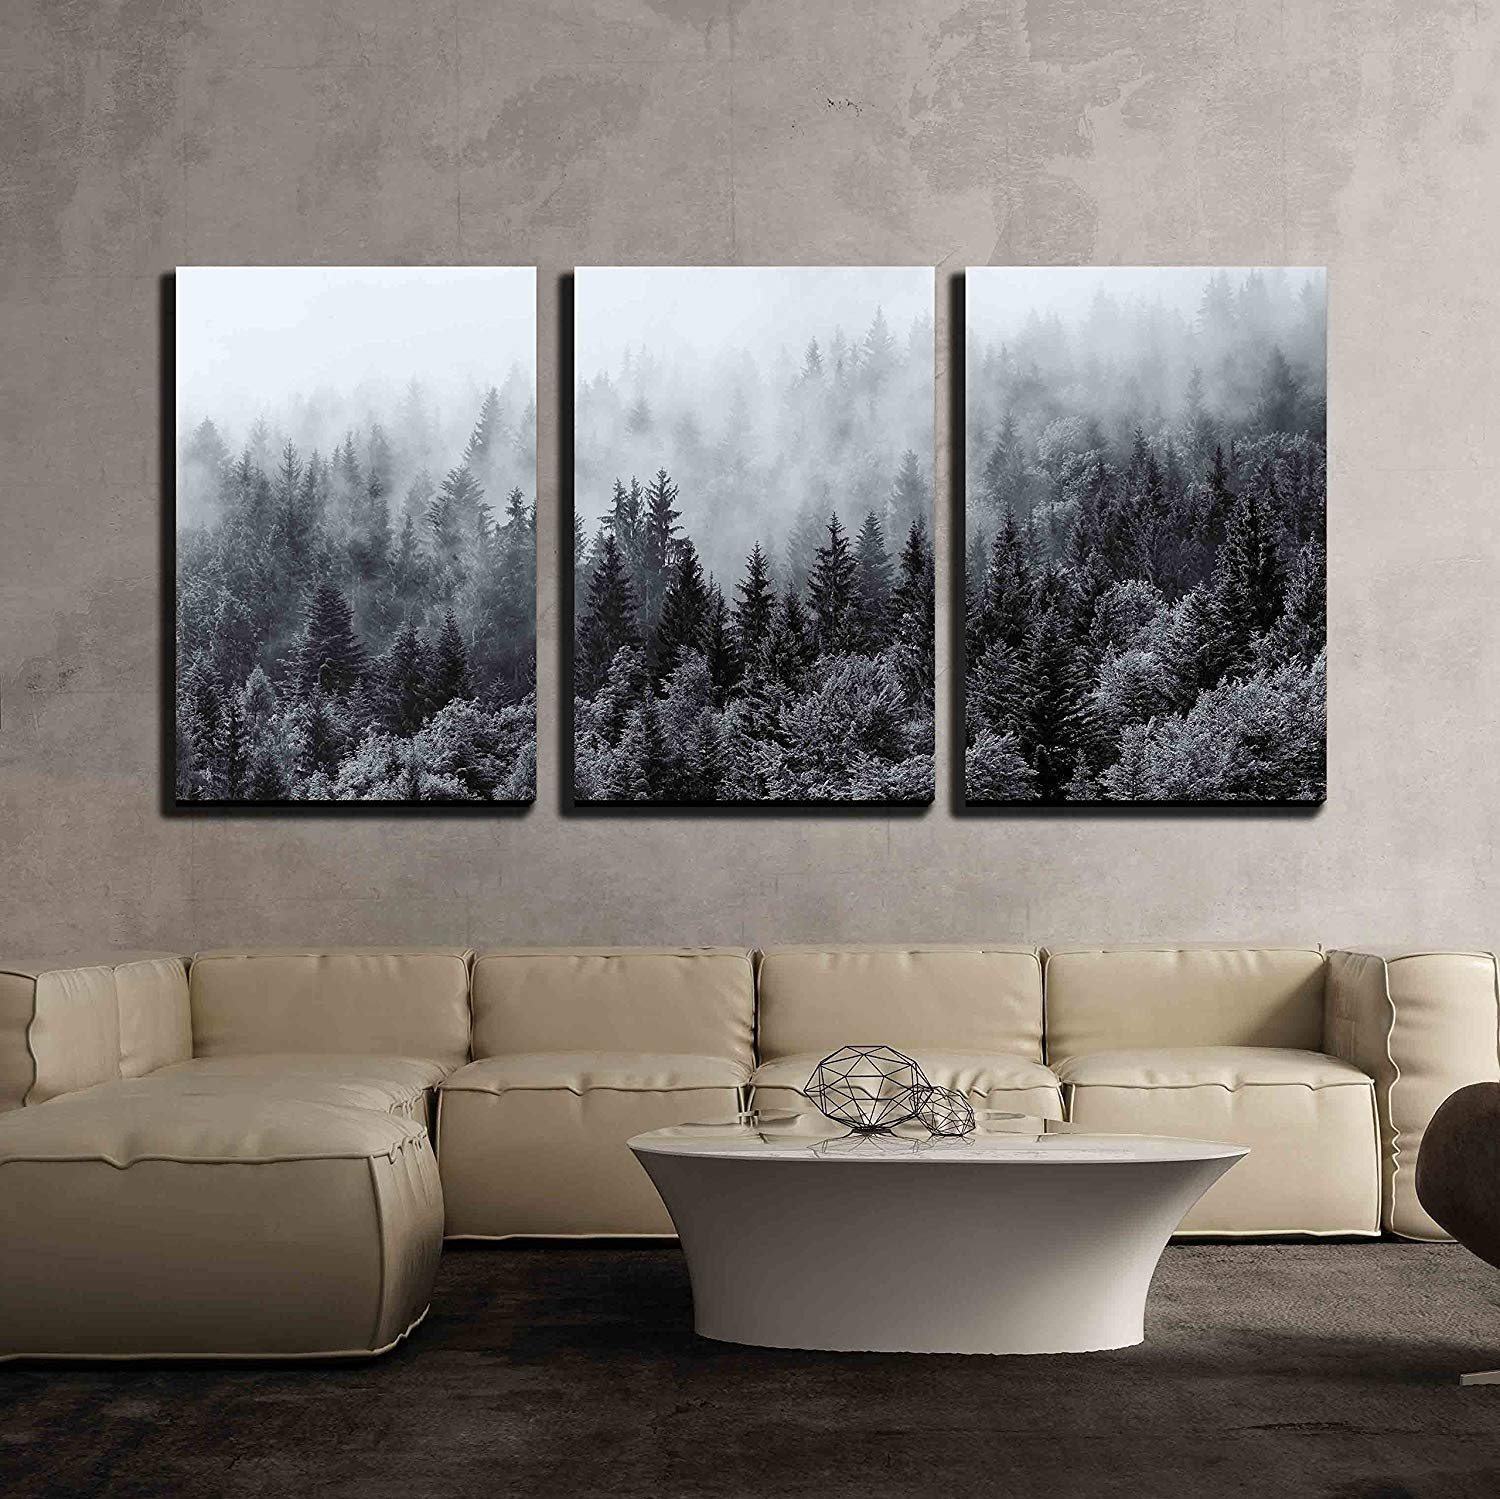 3 piece wall mural with forest mountain scene.